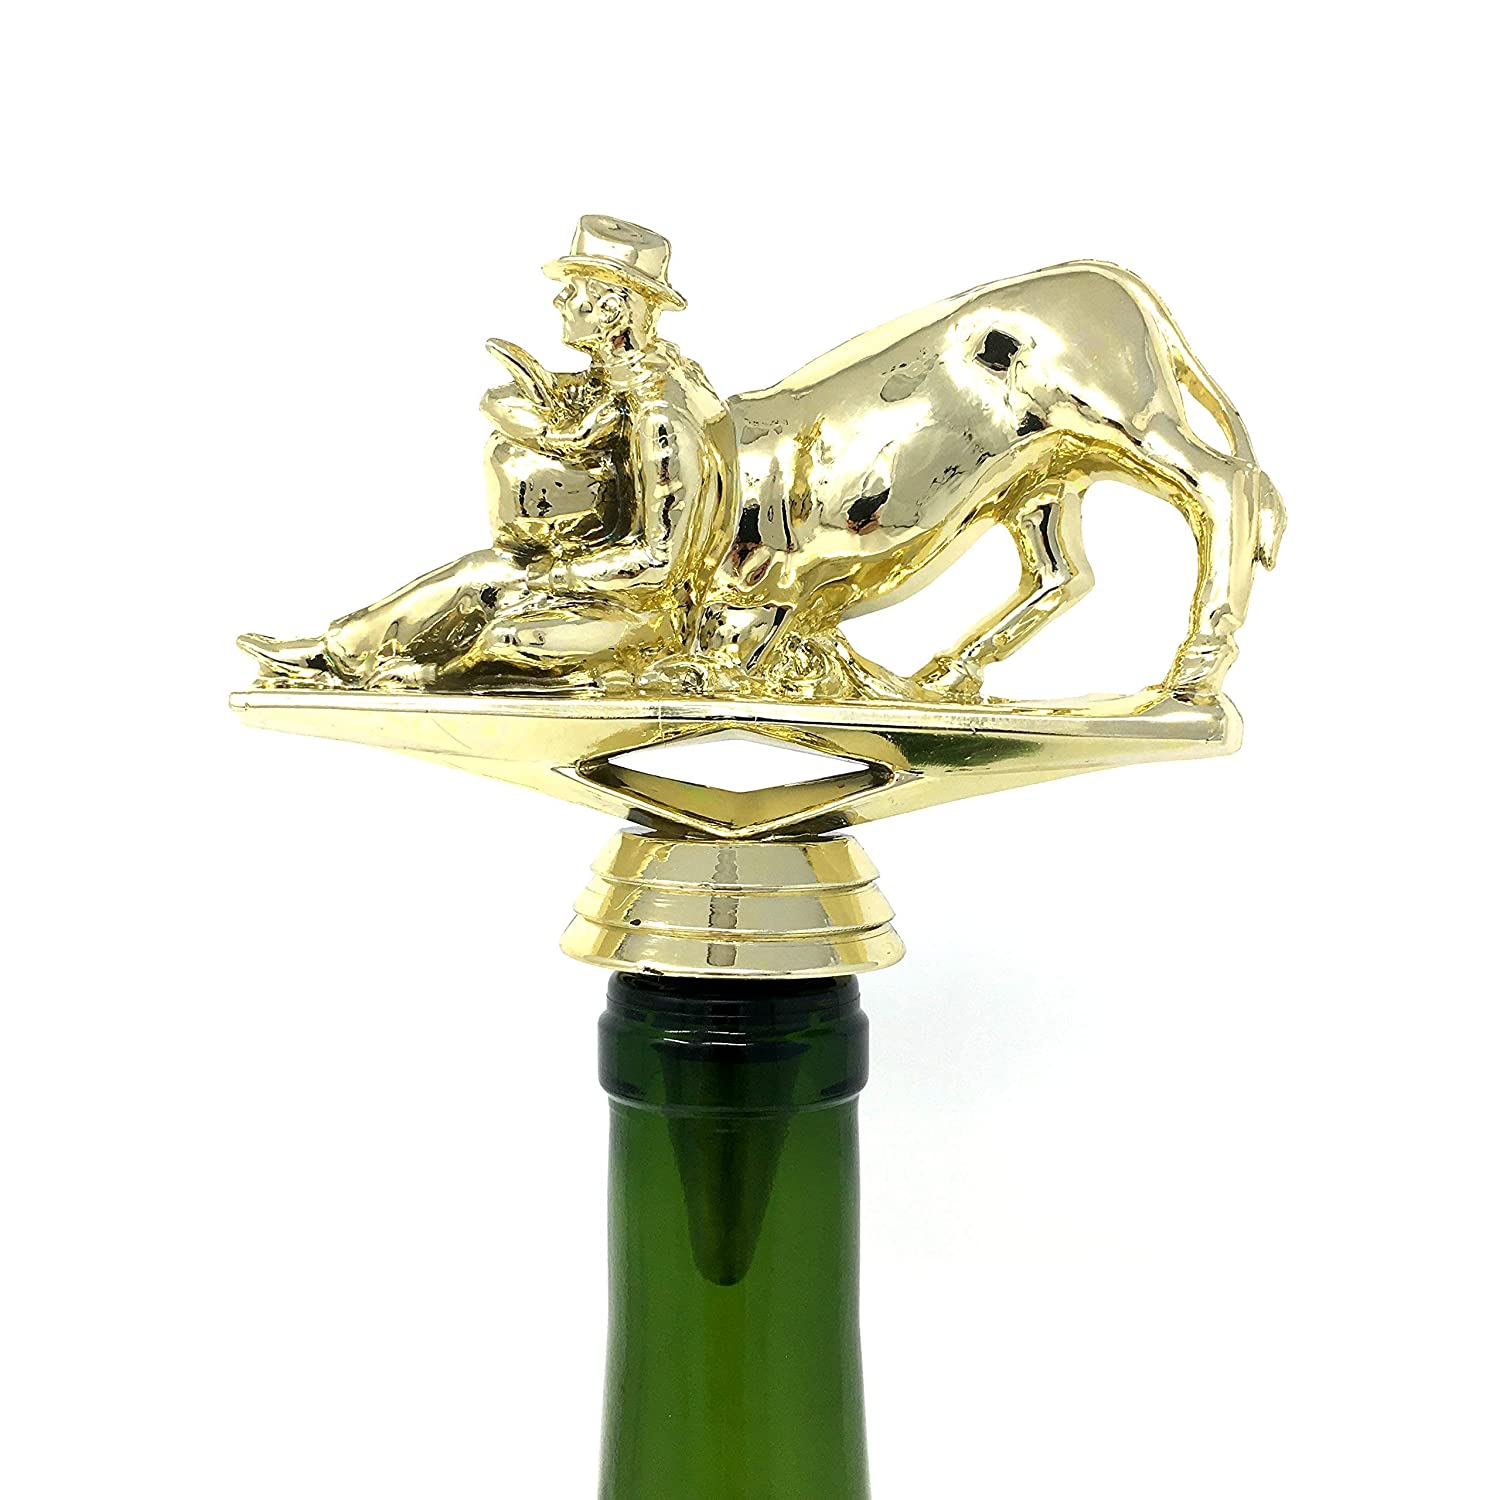 Bull Dogger Wine Bottle Stopper Handmade with Stainless Steel Base and Repurposed Trophy Top